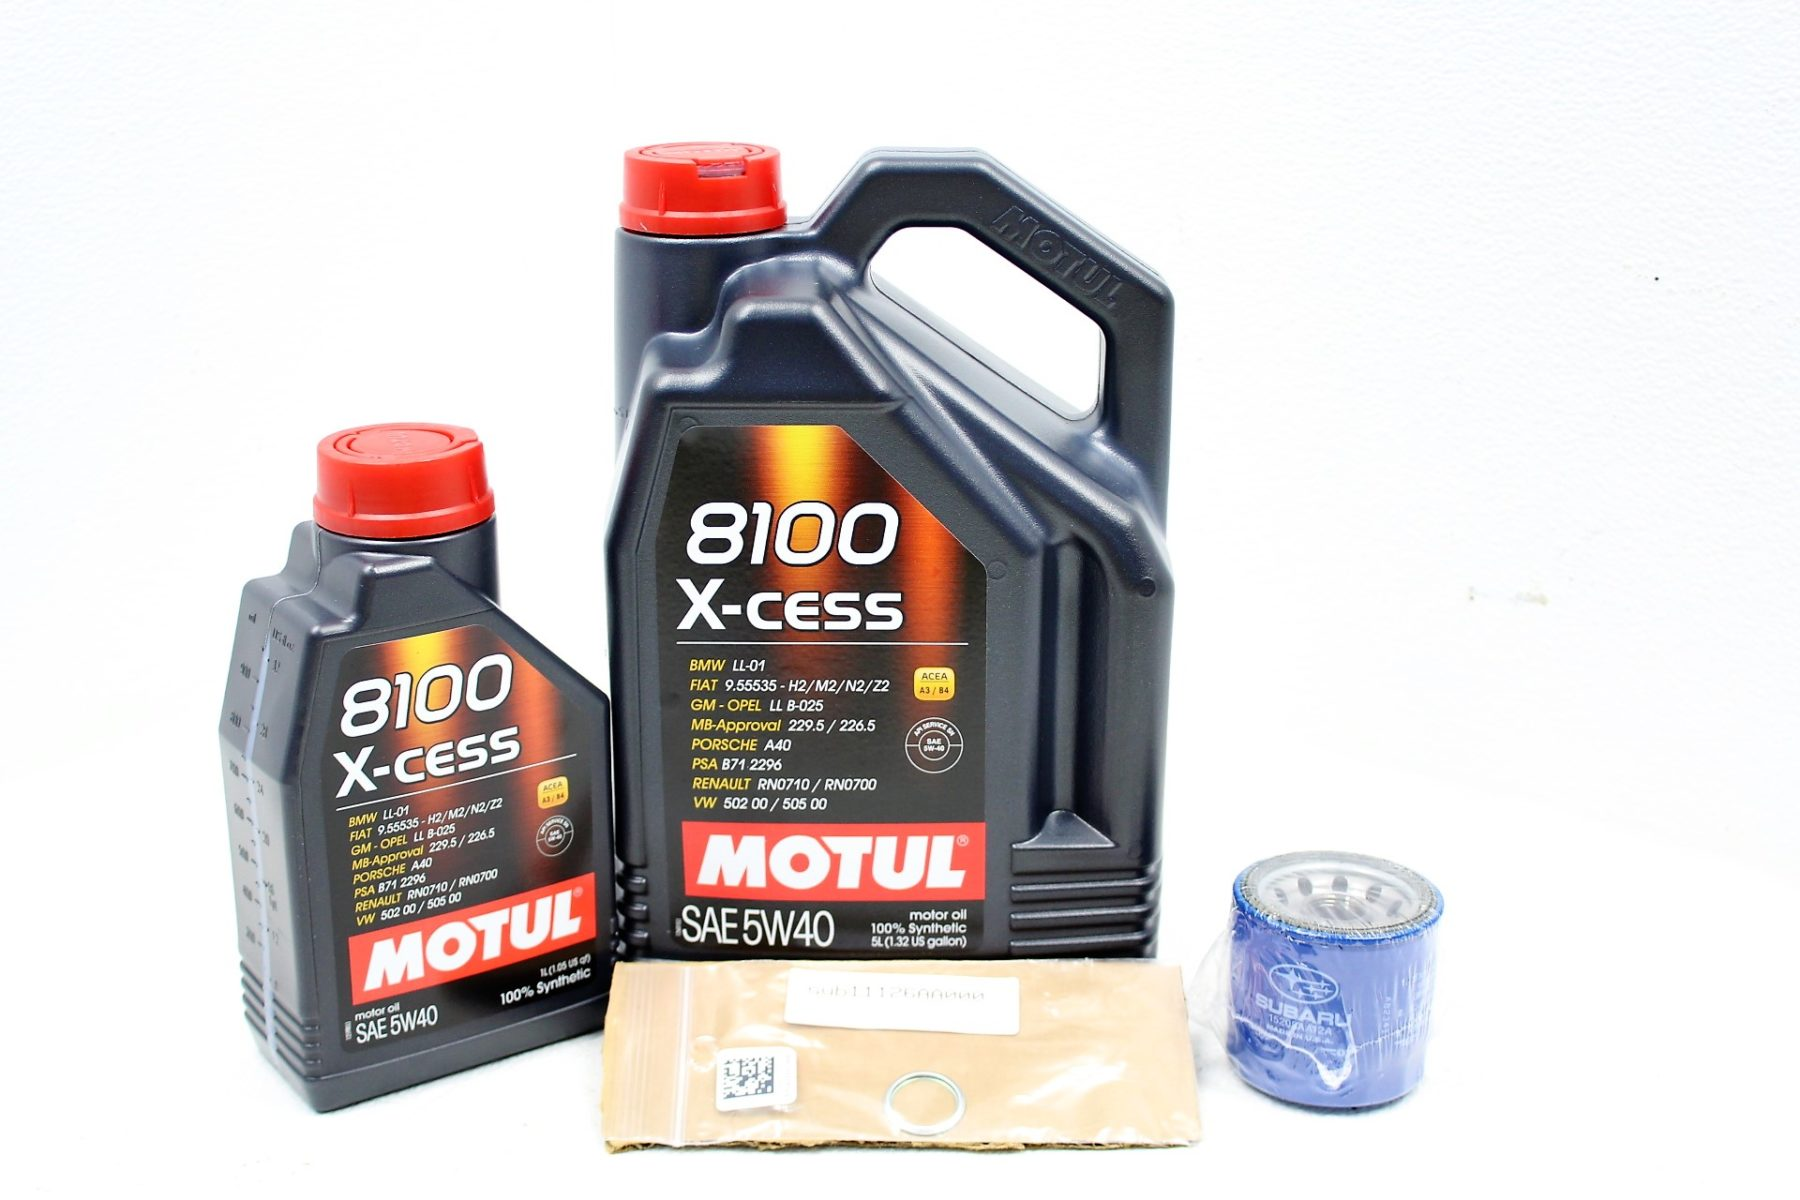 hight resolution of 2002 2014 subaru wrx sti fxt lgt motul 8100 x cess 5w40 engine oil change kit